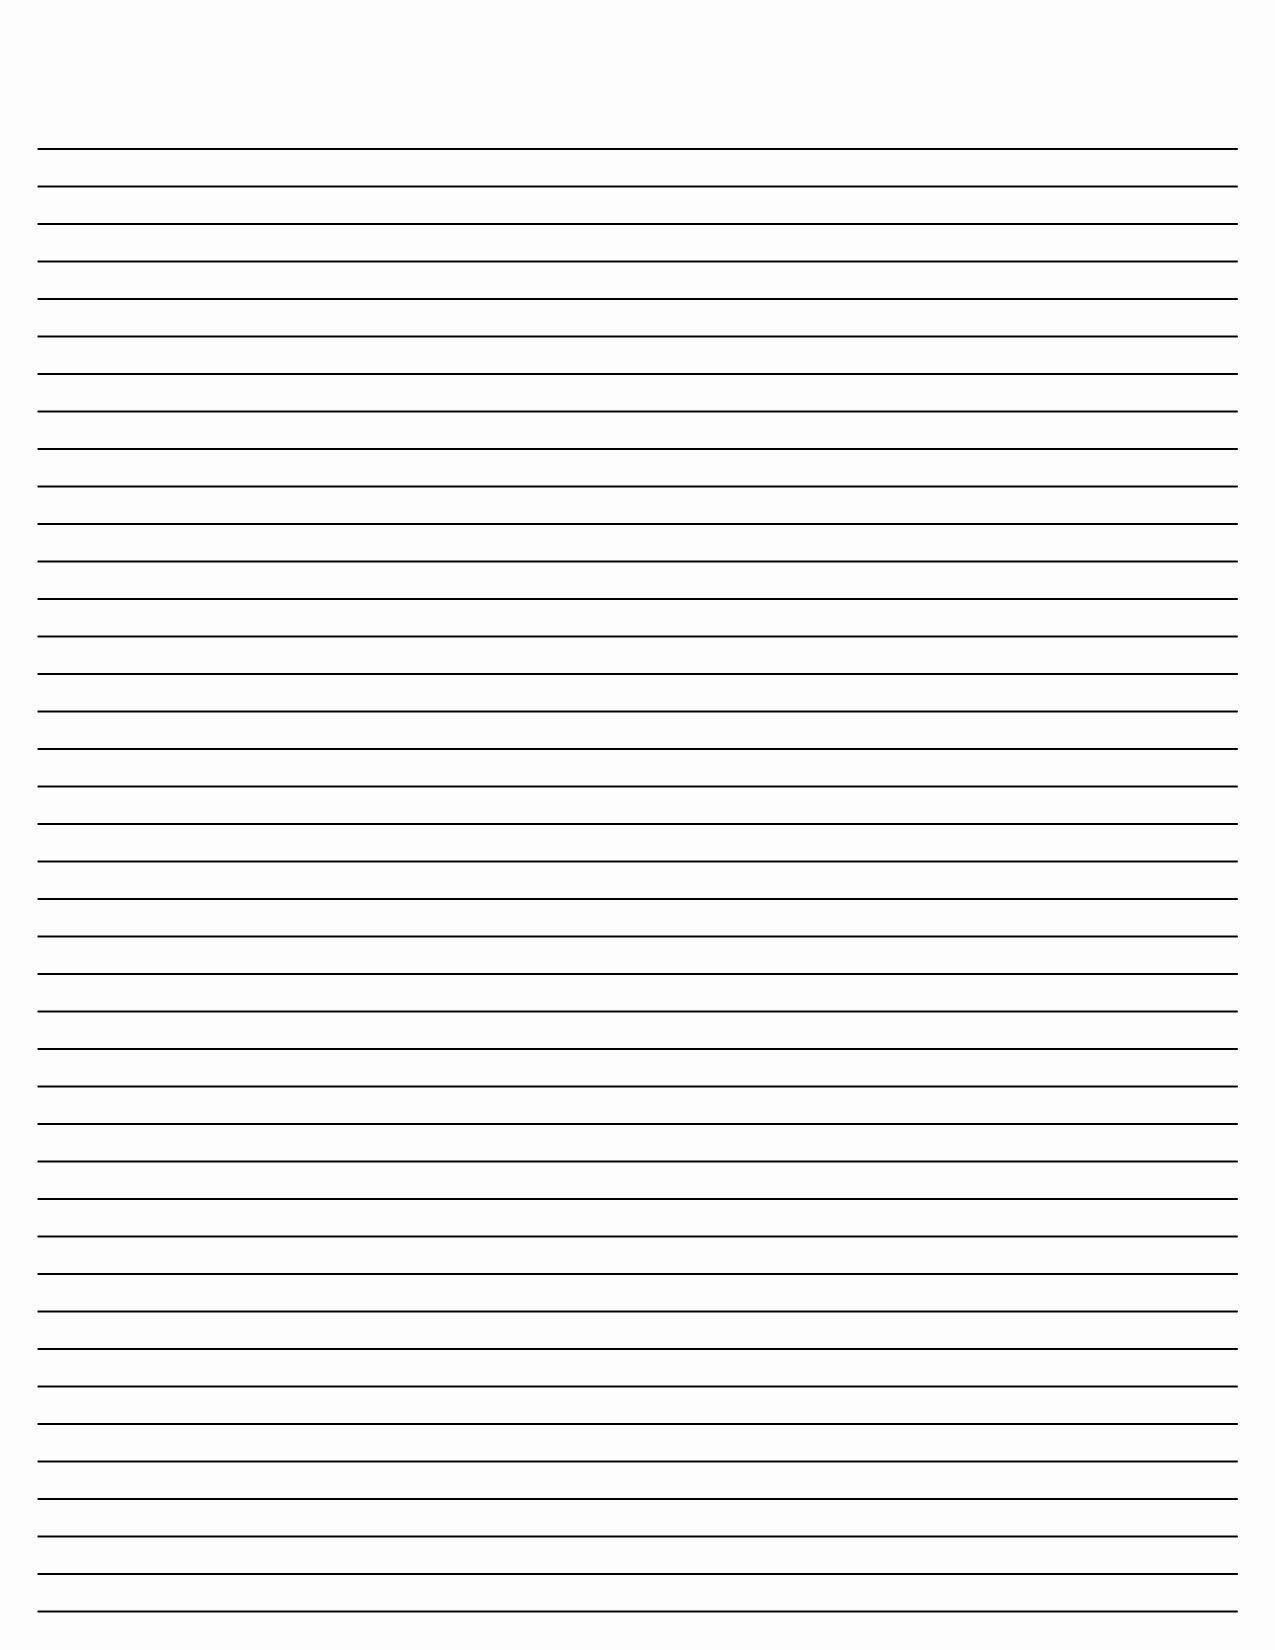 Lined Paper Template Pdf Unique Printable Lined Paper Jpg and Pdf Templates